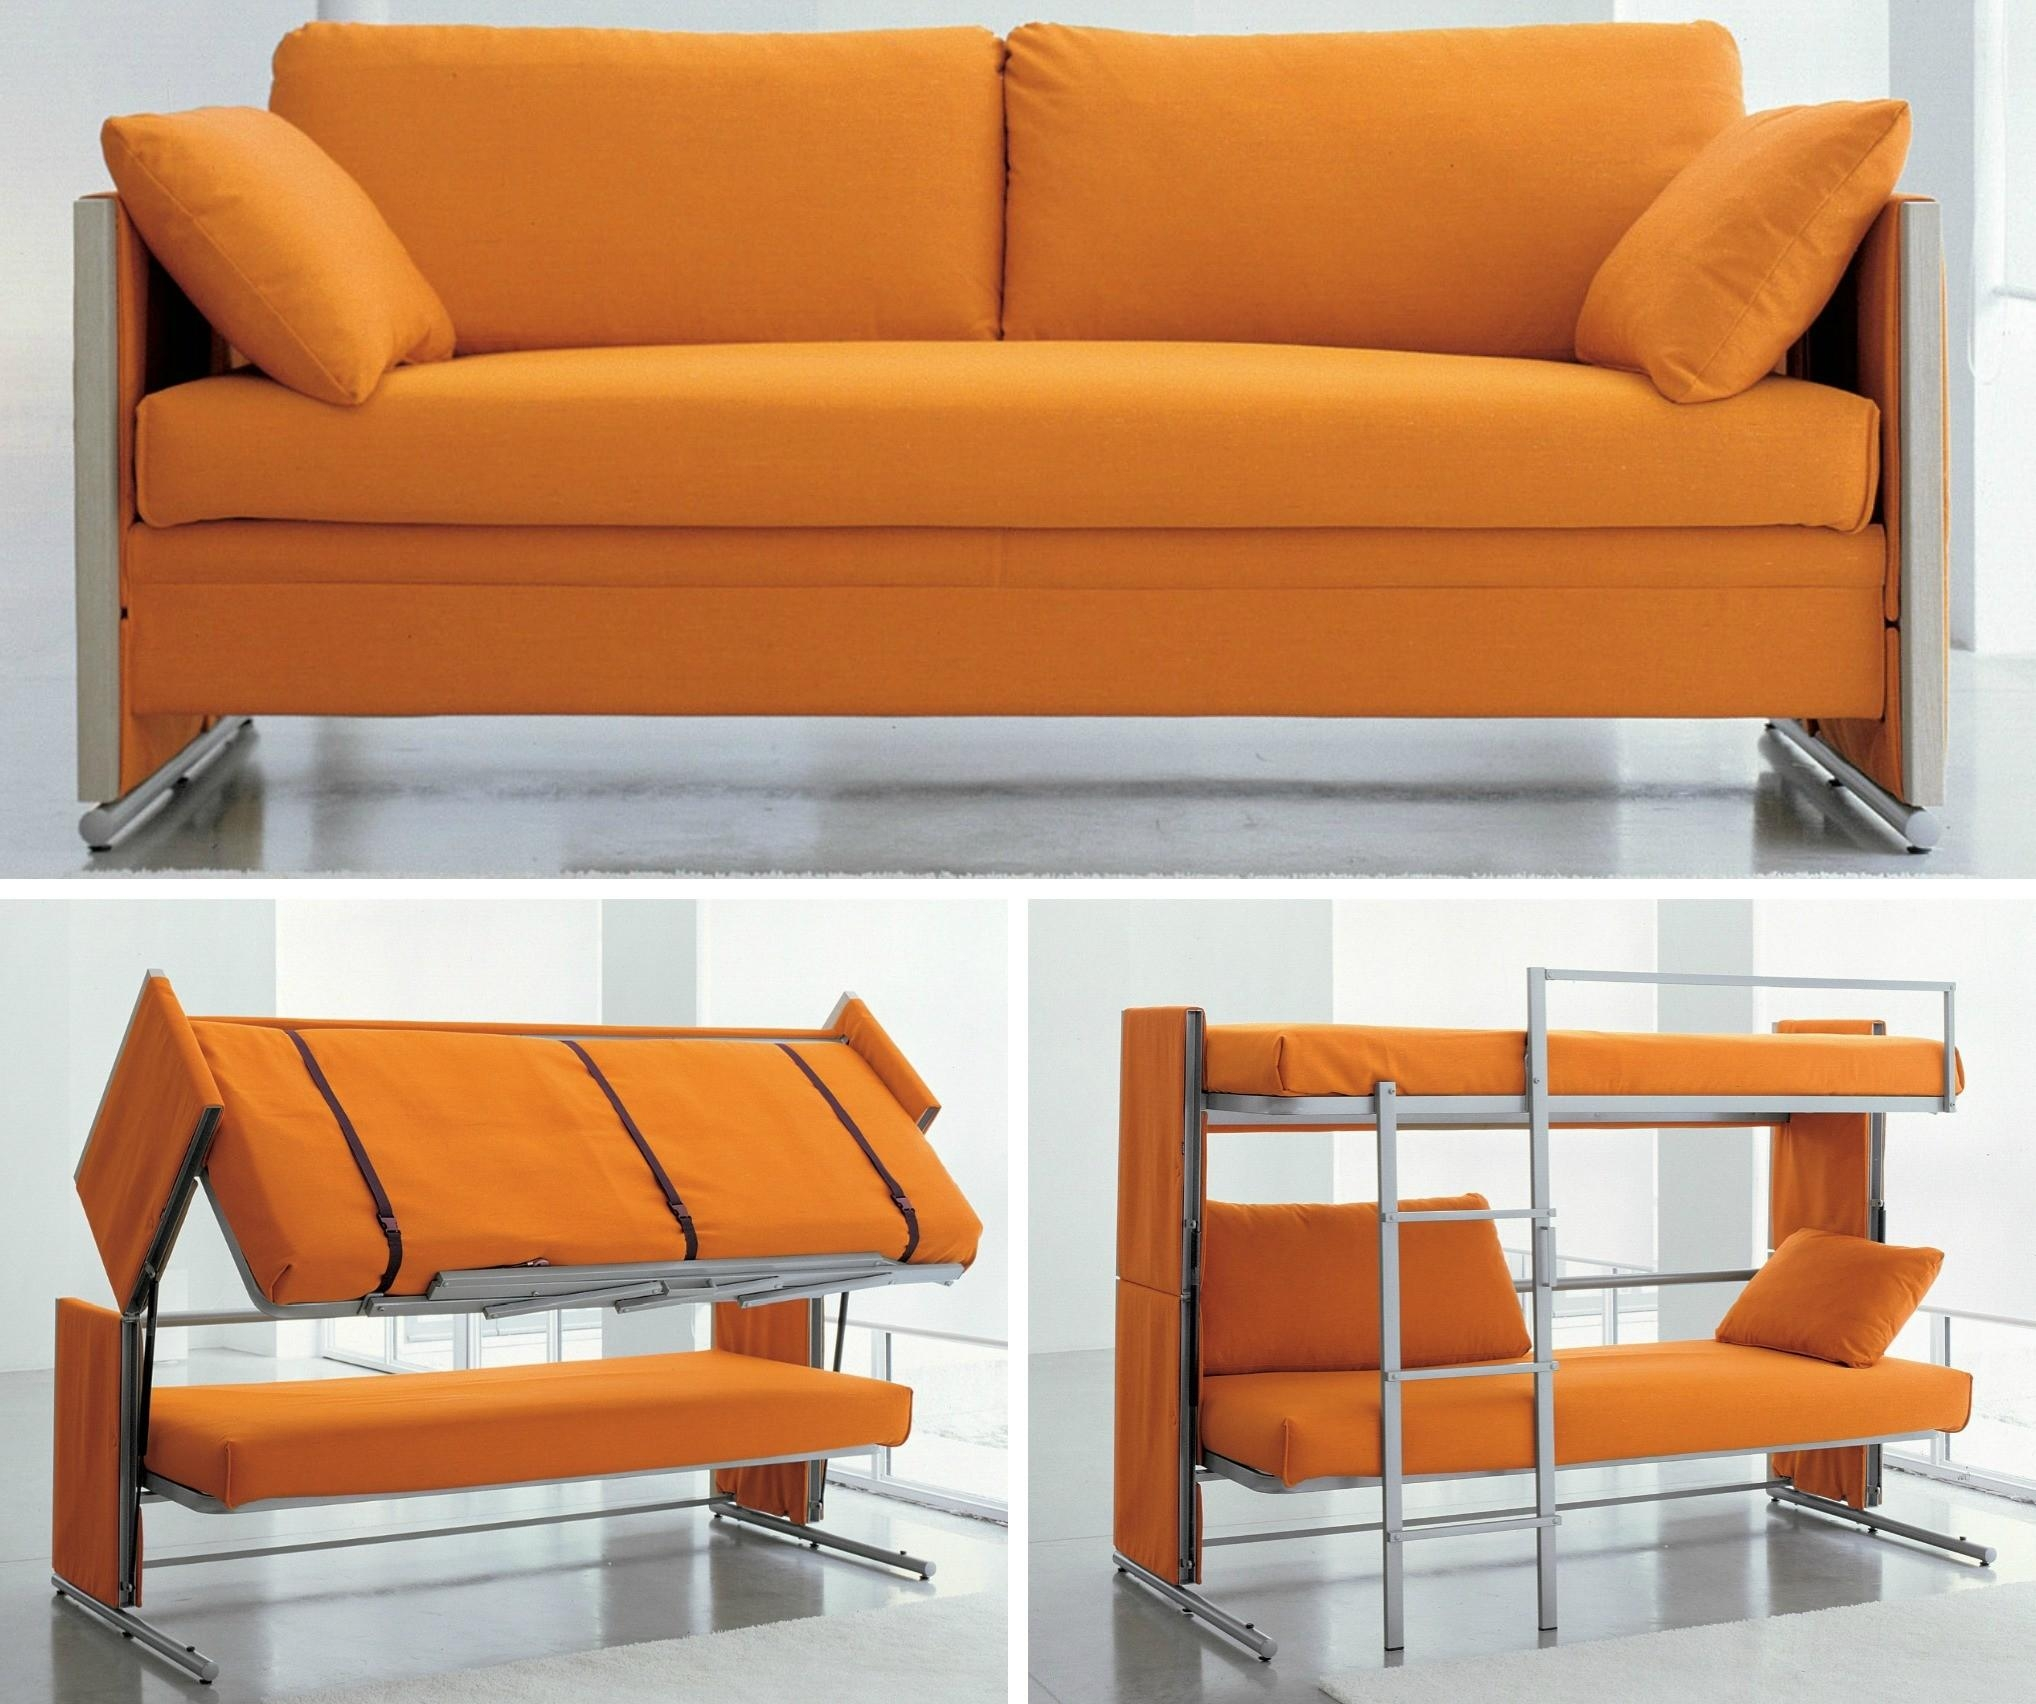 Doc Transforms From Sofa To Bunk Beds With One Swift Motion | 6Sqft Pertaining To Sofa Bunk Beds (View 4 of 20)